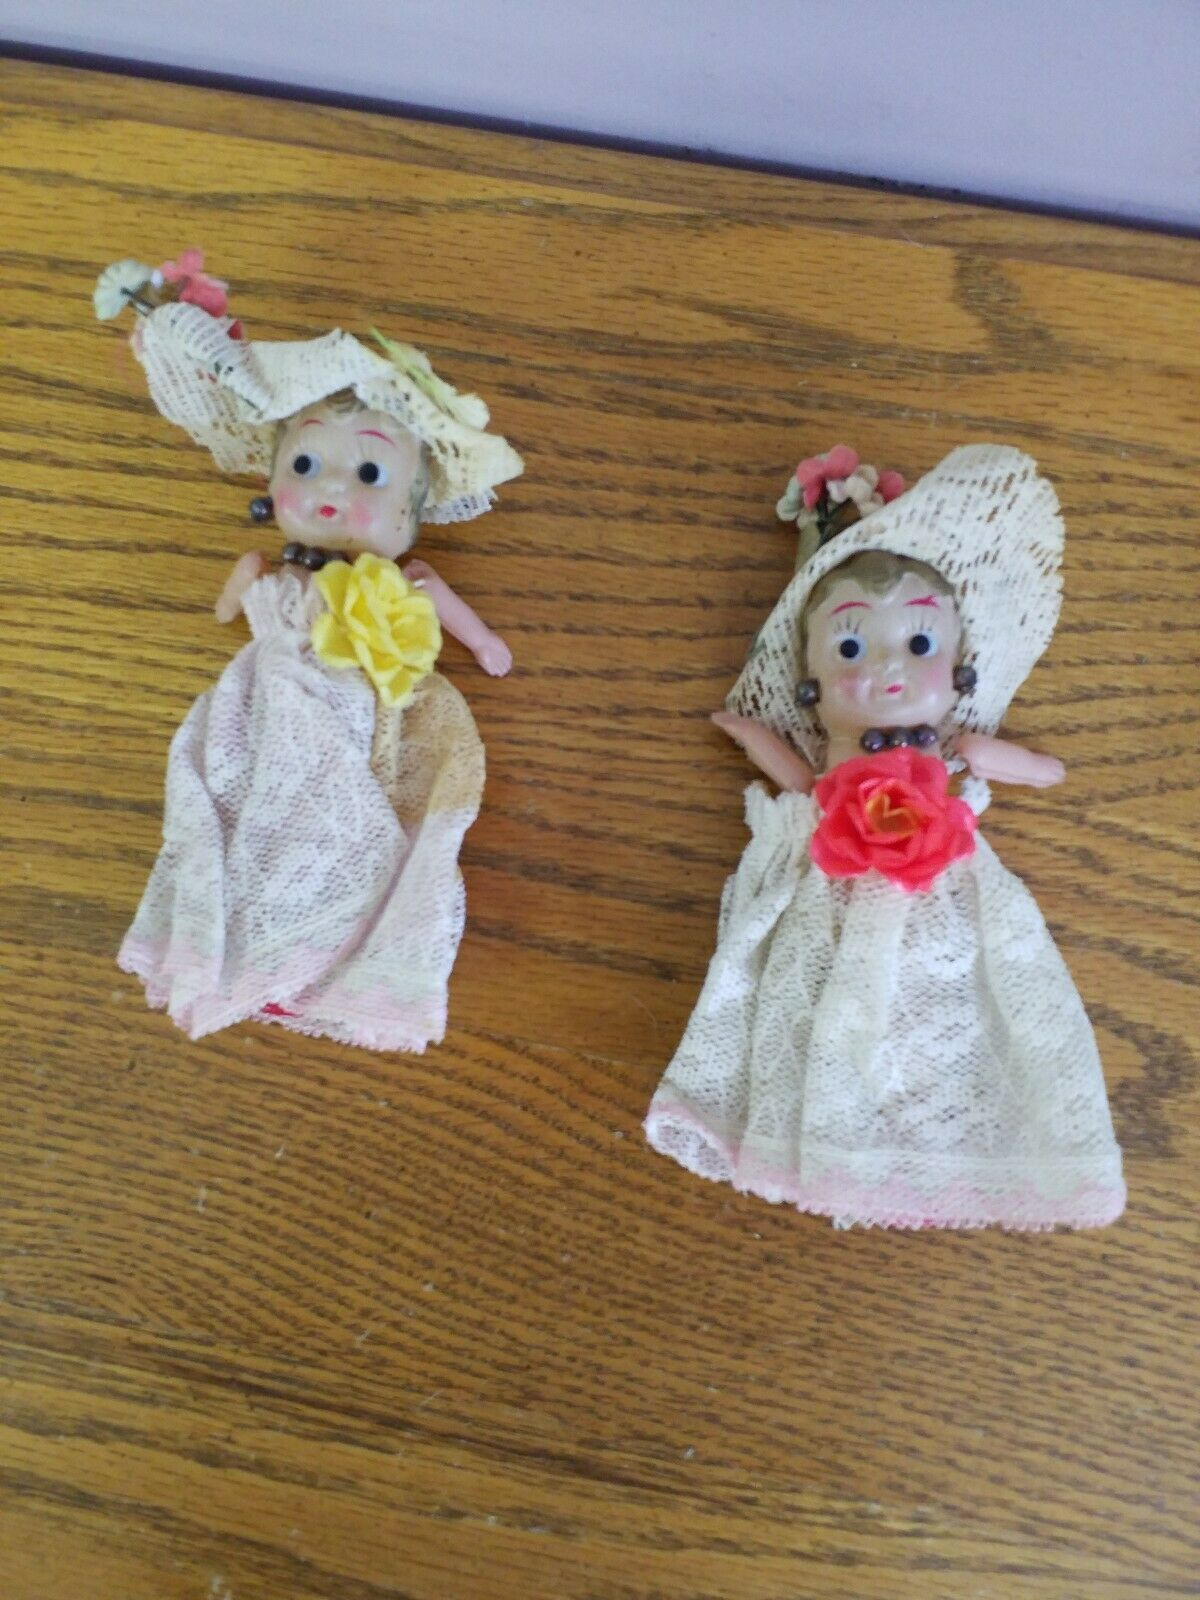 2 Vintage Japan Celluloid Show Girl Doll Lace Joded Hat guld Hair